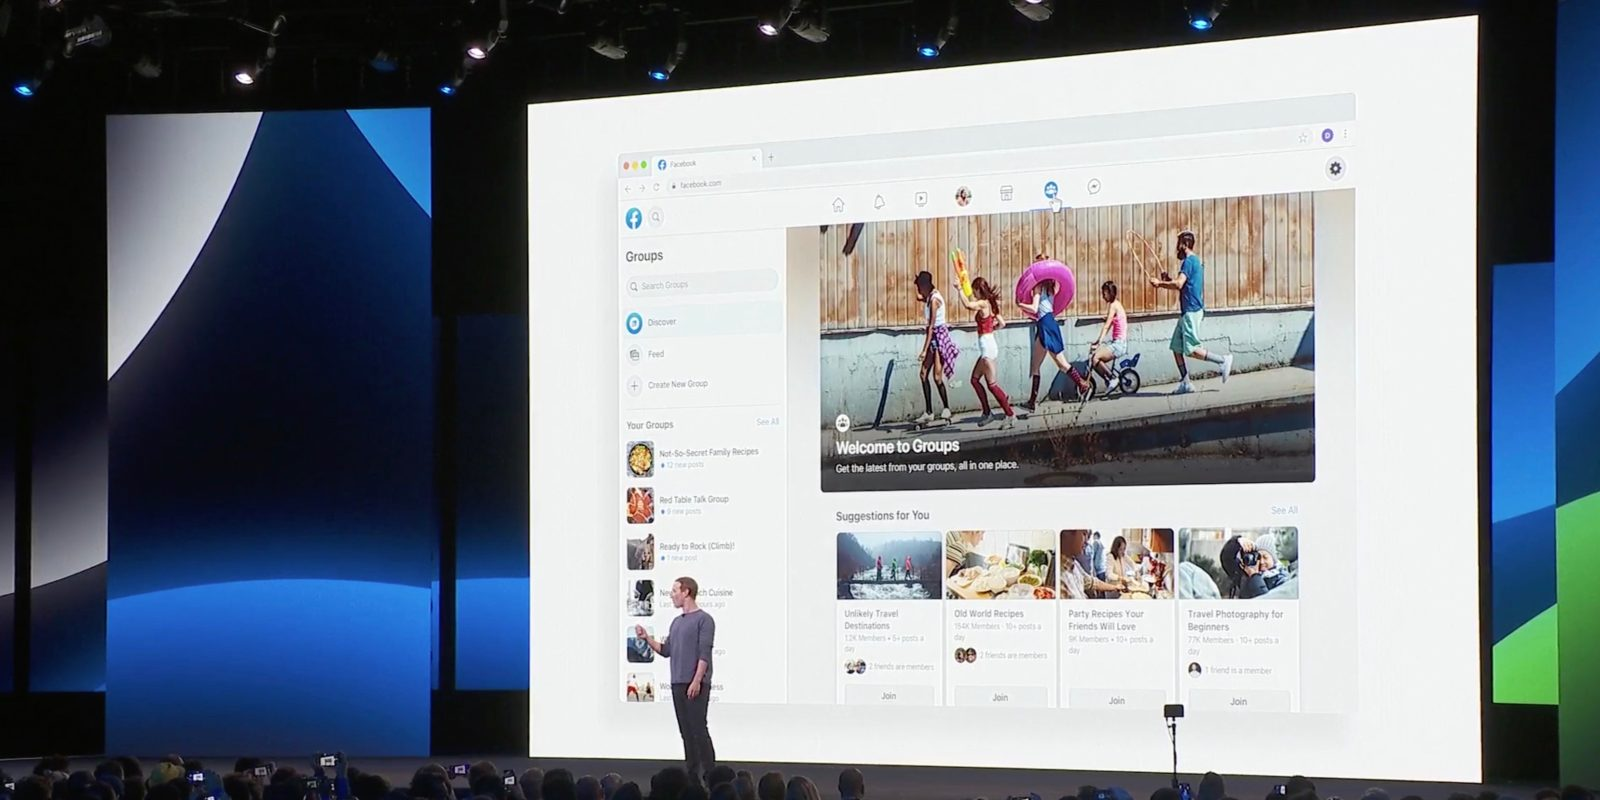 How Facebook's New Focus on Groups Could Change Your Marketing - Mark Zuckerburg f8 2019